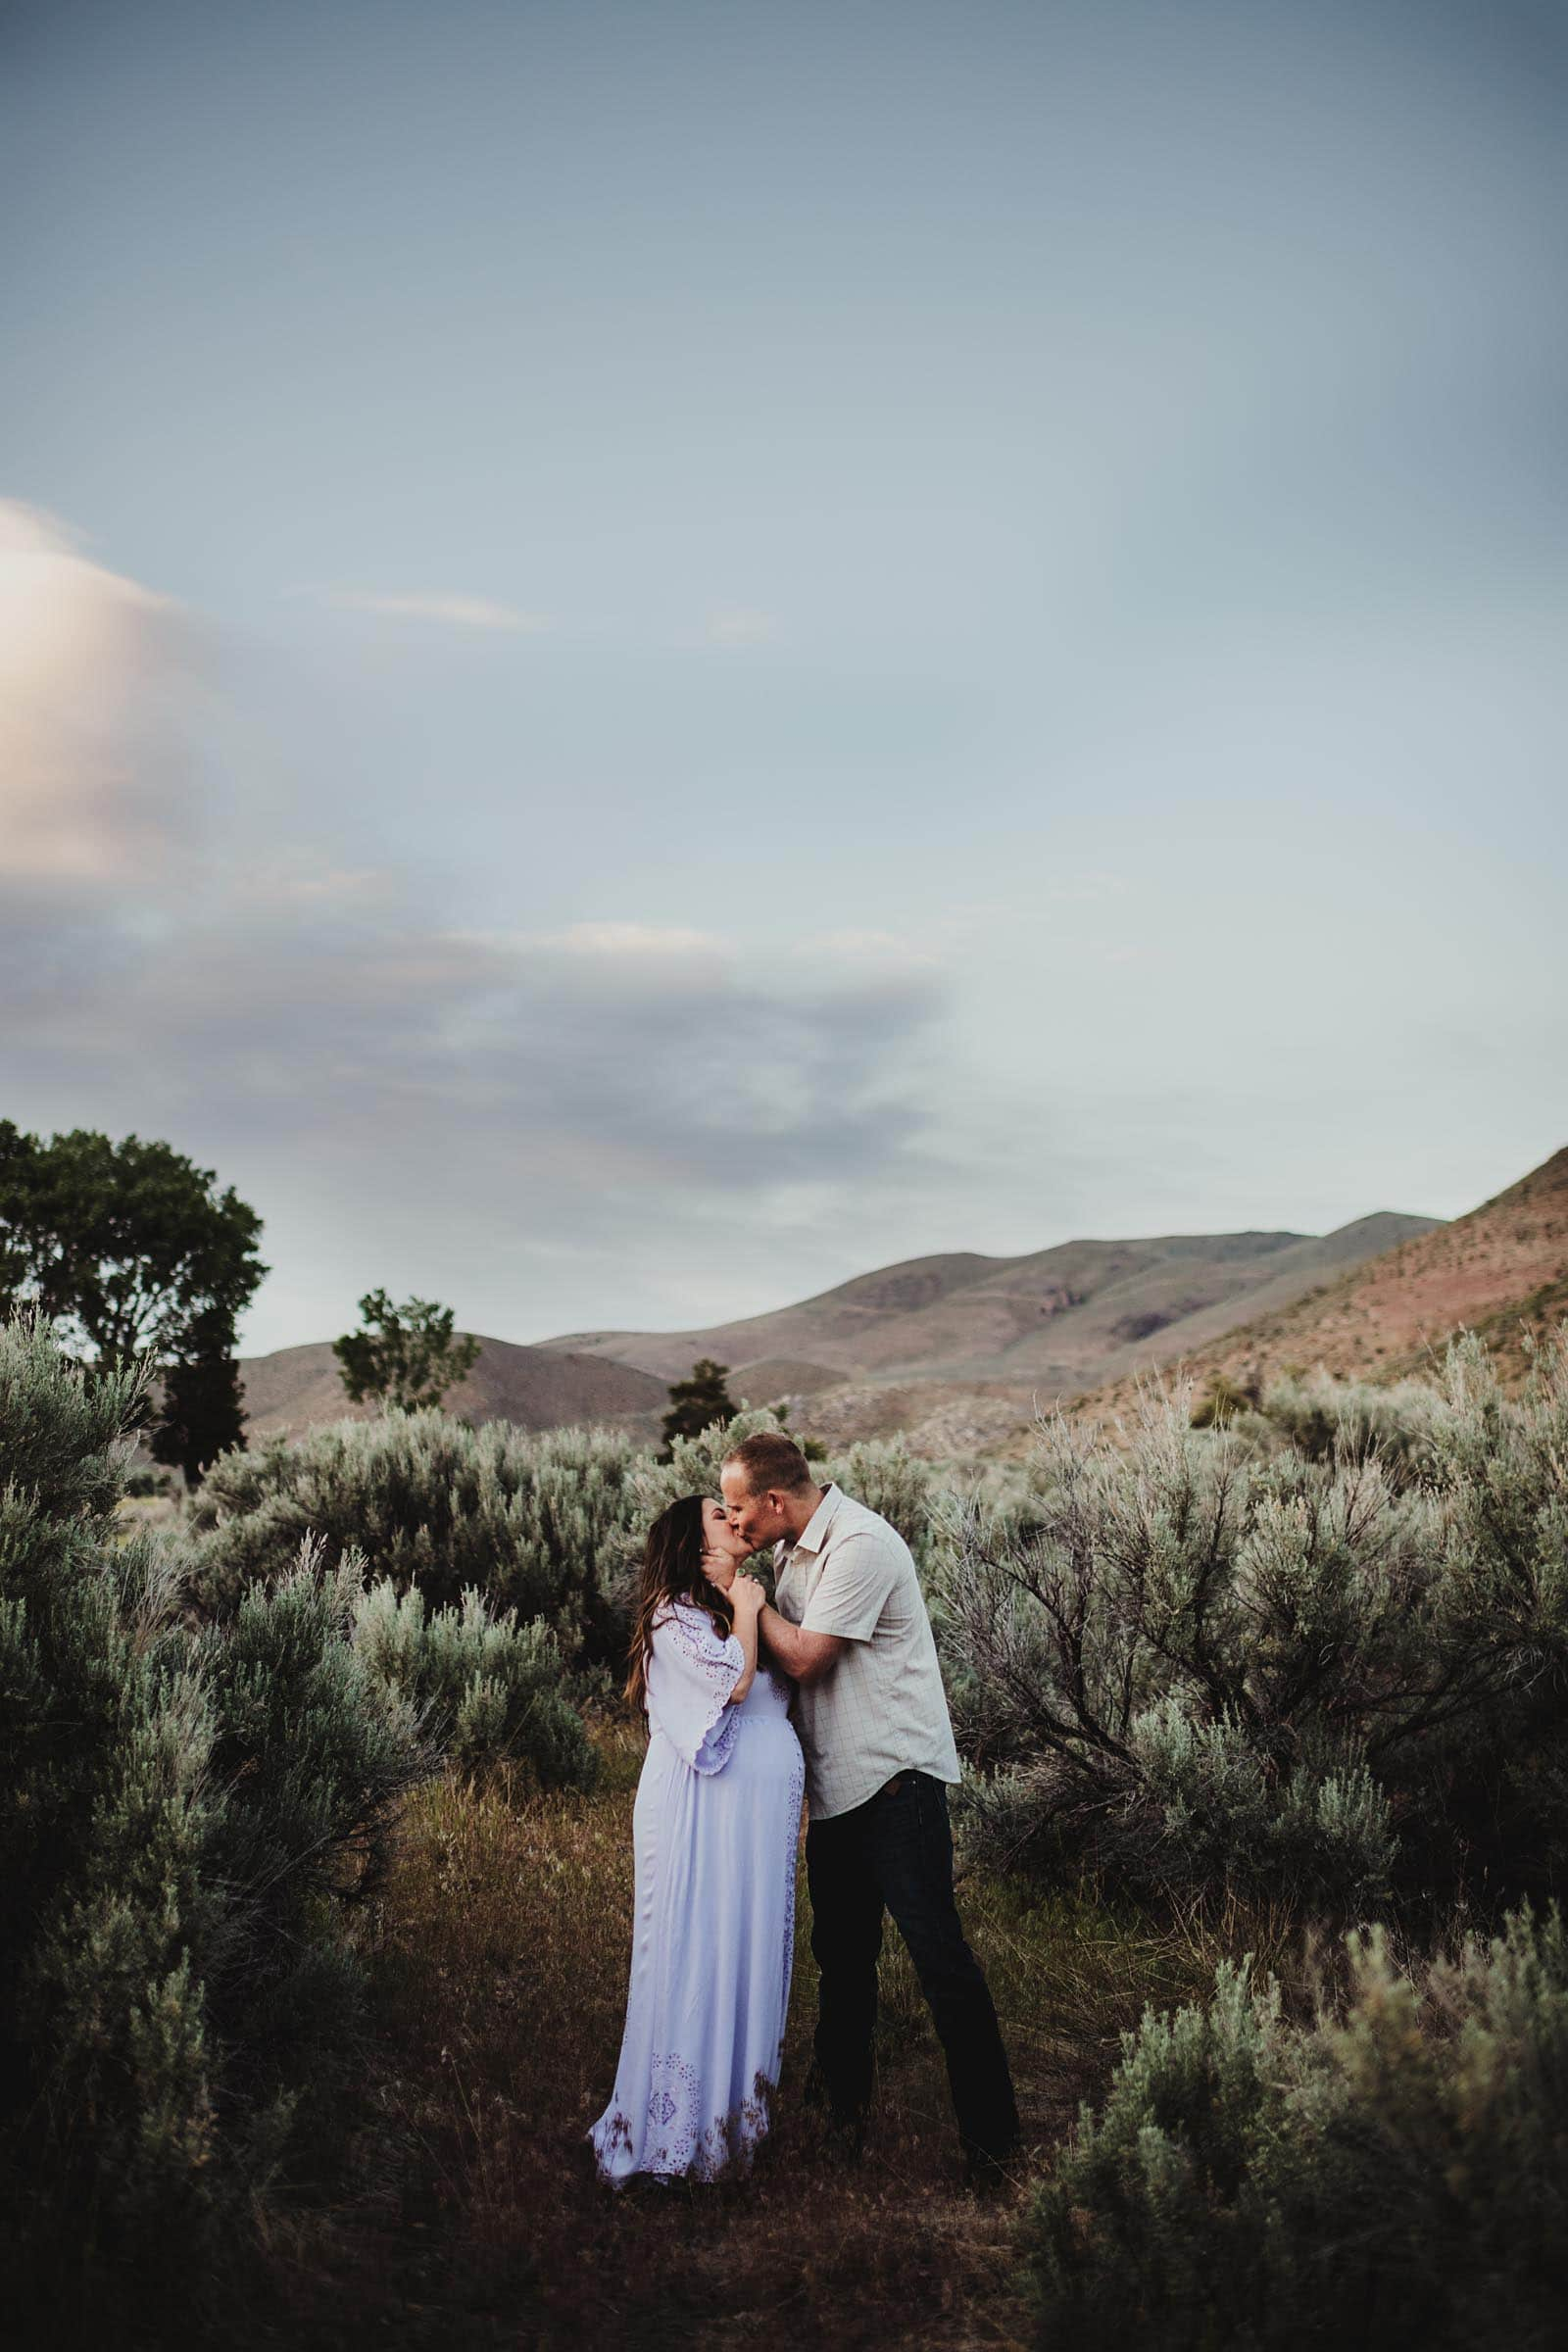 Maternity Couple Kissing in Field